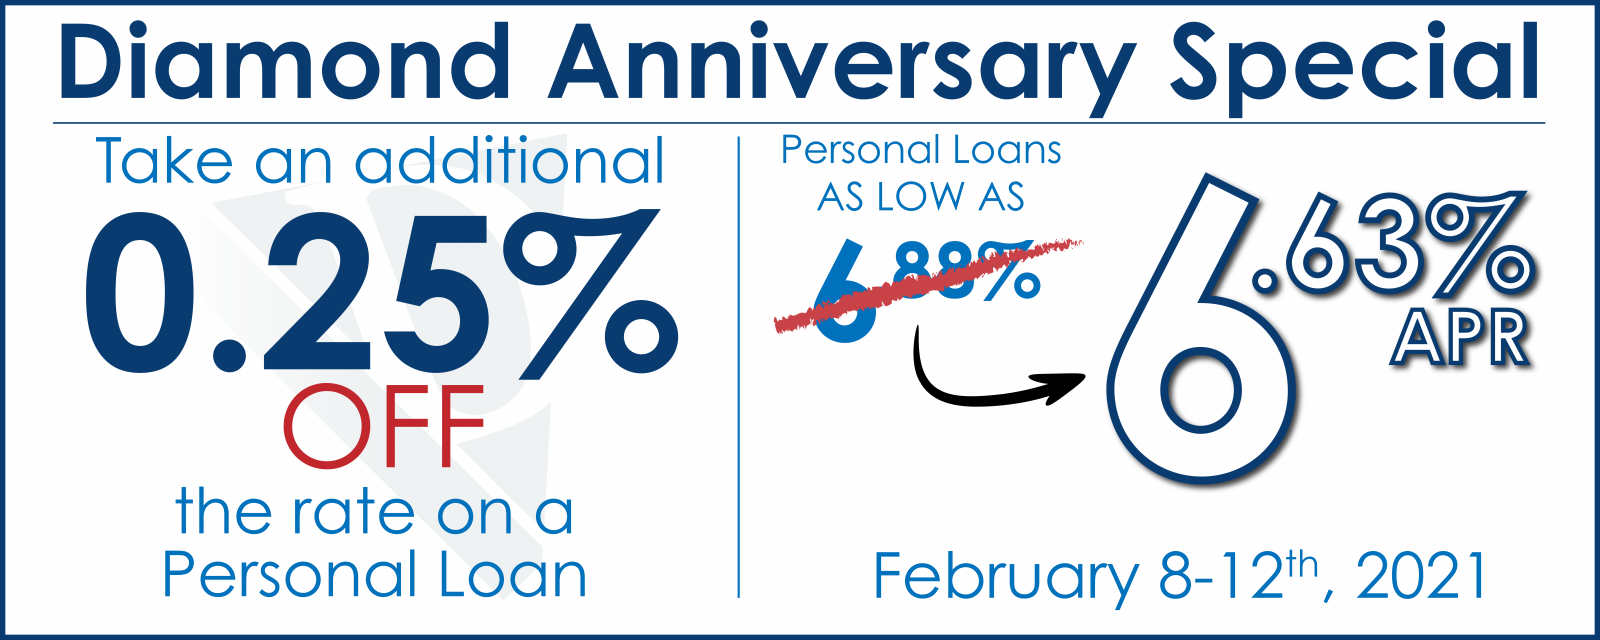 Get a 0.25% DISCOUNT on a Personal Loan from Diamond Valley! This week only!